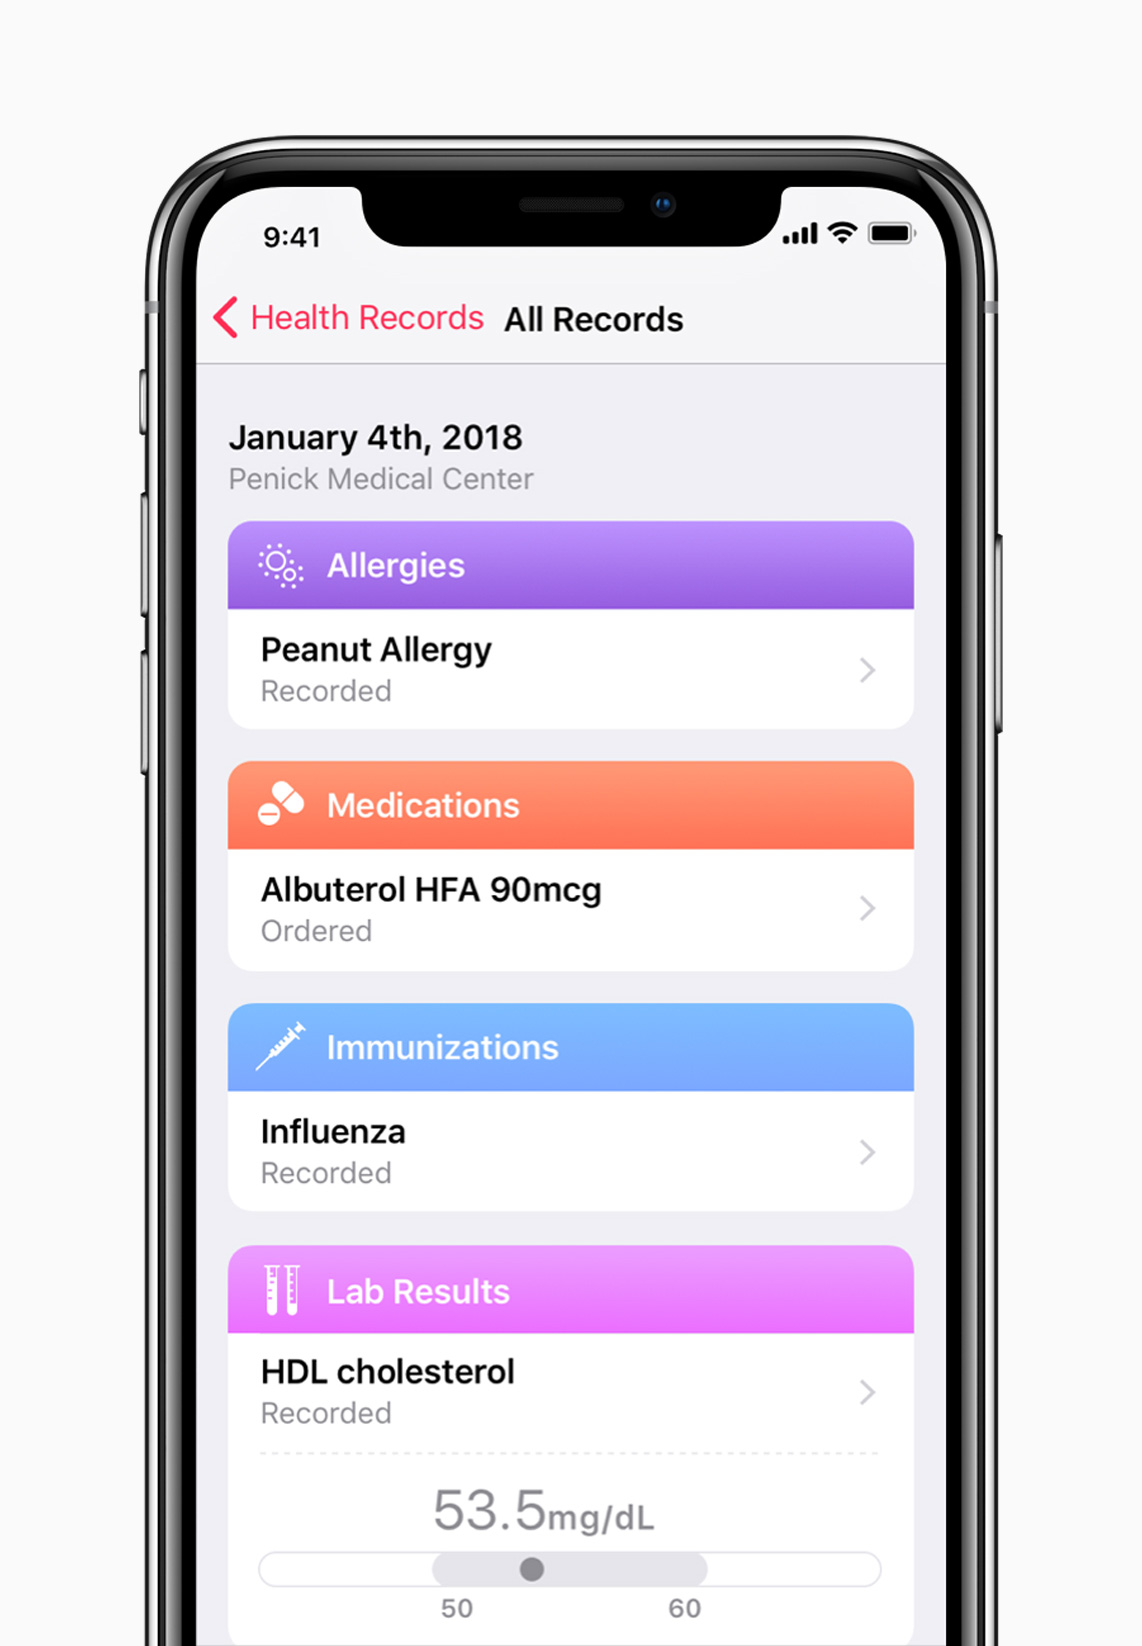 Apple wants to gather all your medical records in the Health app